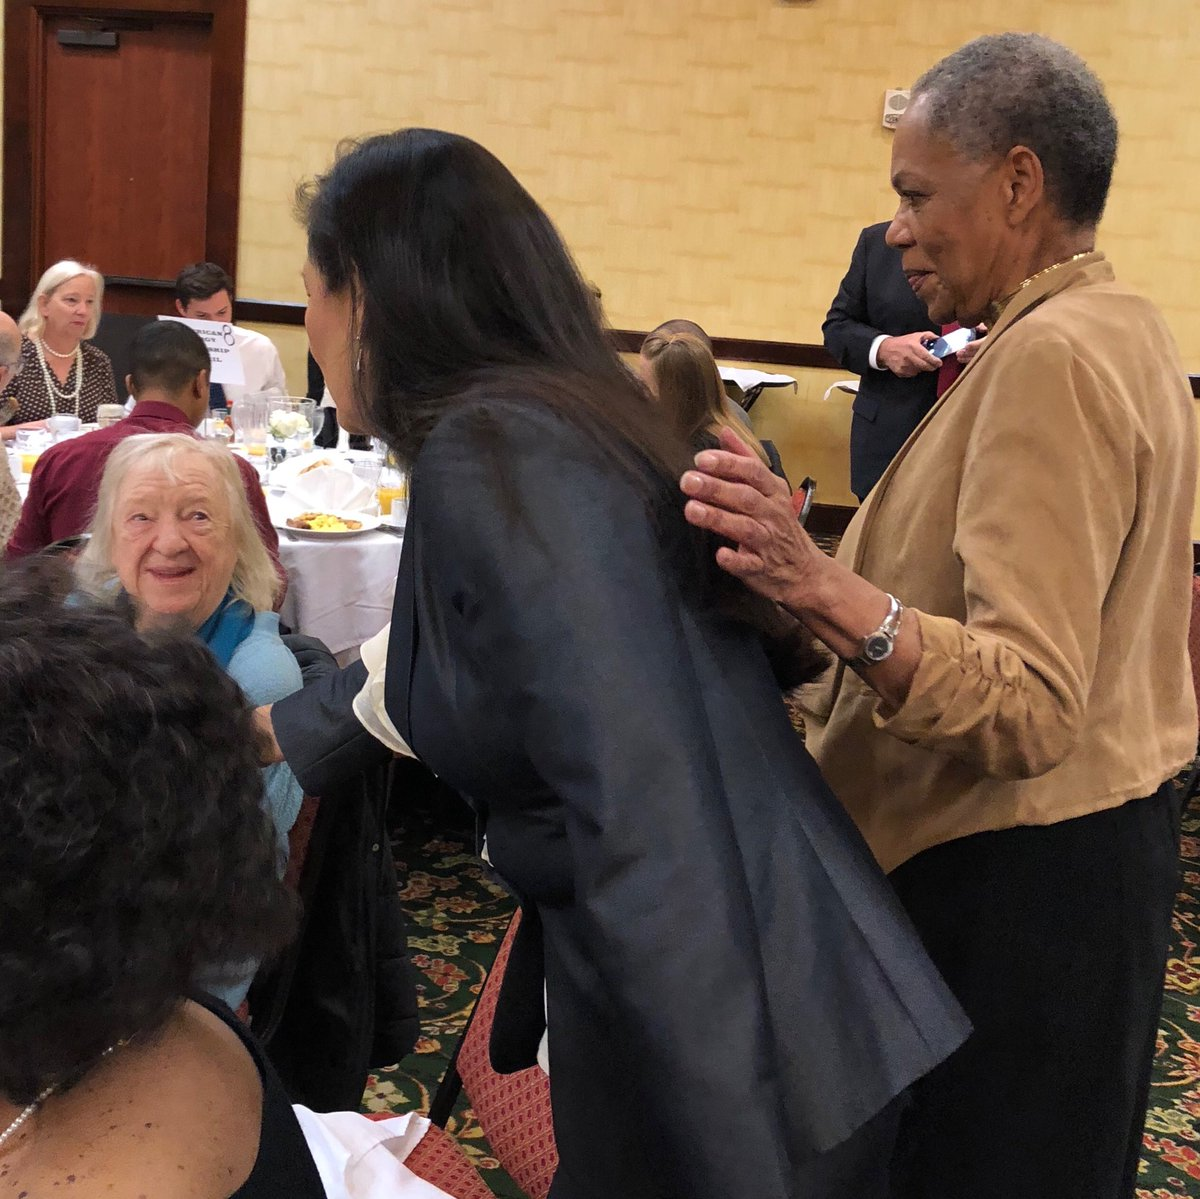 Rep Deb Haaland On Twitter Honoring The Memory Of Dr Martin Luther King Jr At The 23rd Annual Mlk Community Commemorative Breakfast Hosted By Grant Chapel African Methodist Episcopal Church Lay Organization